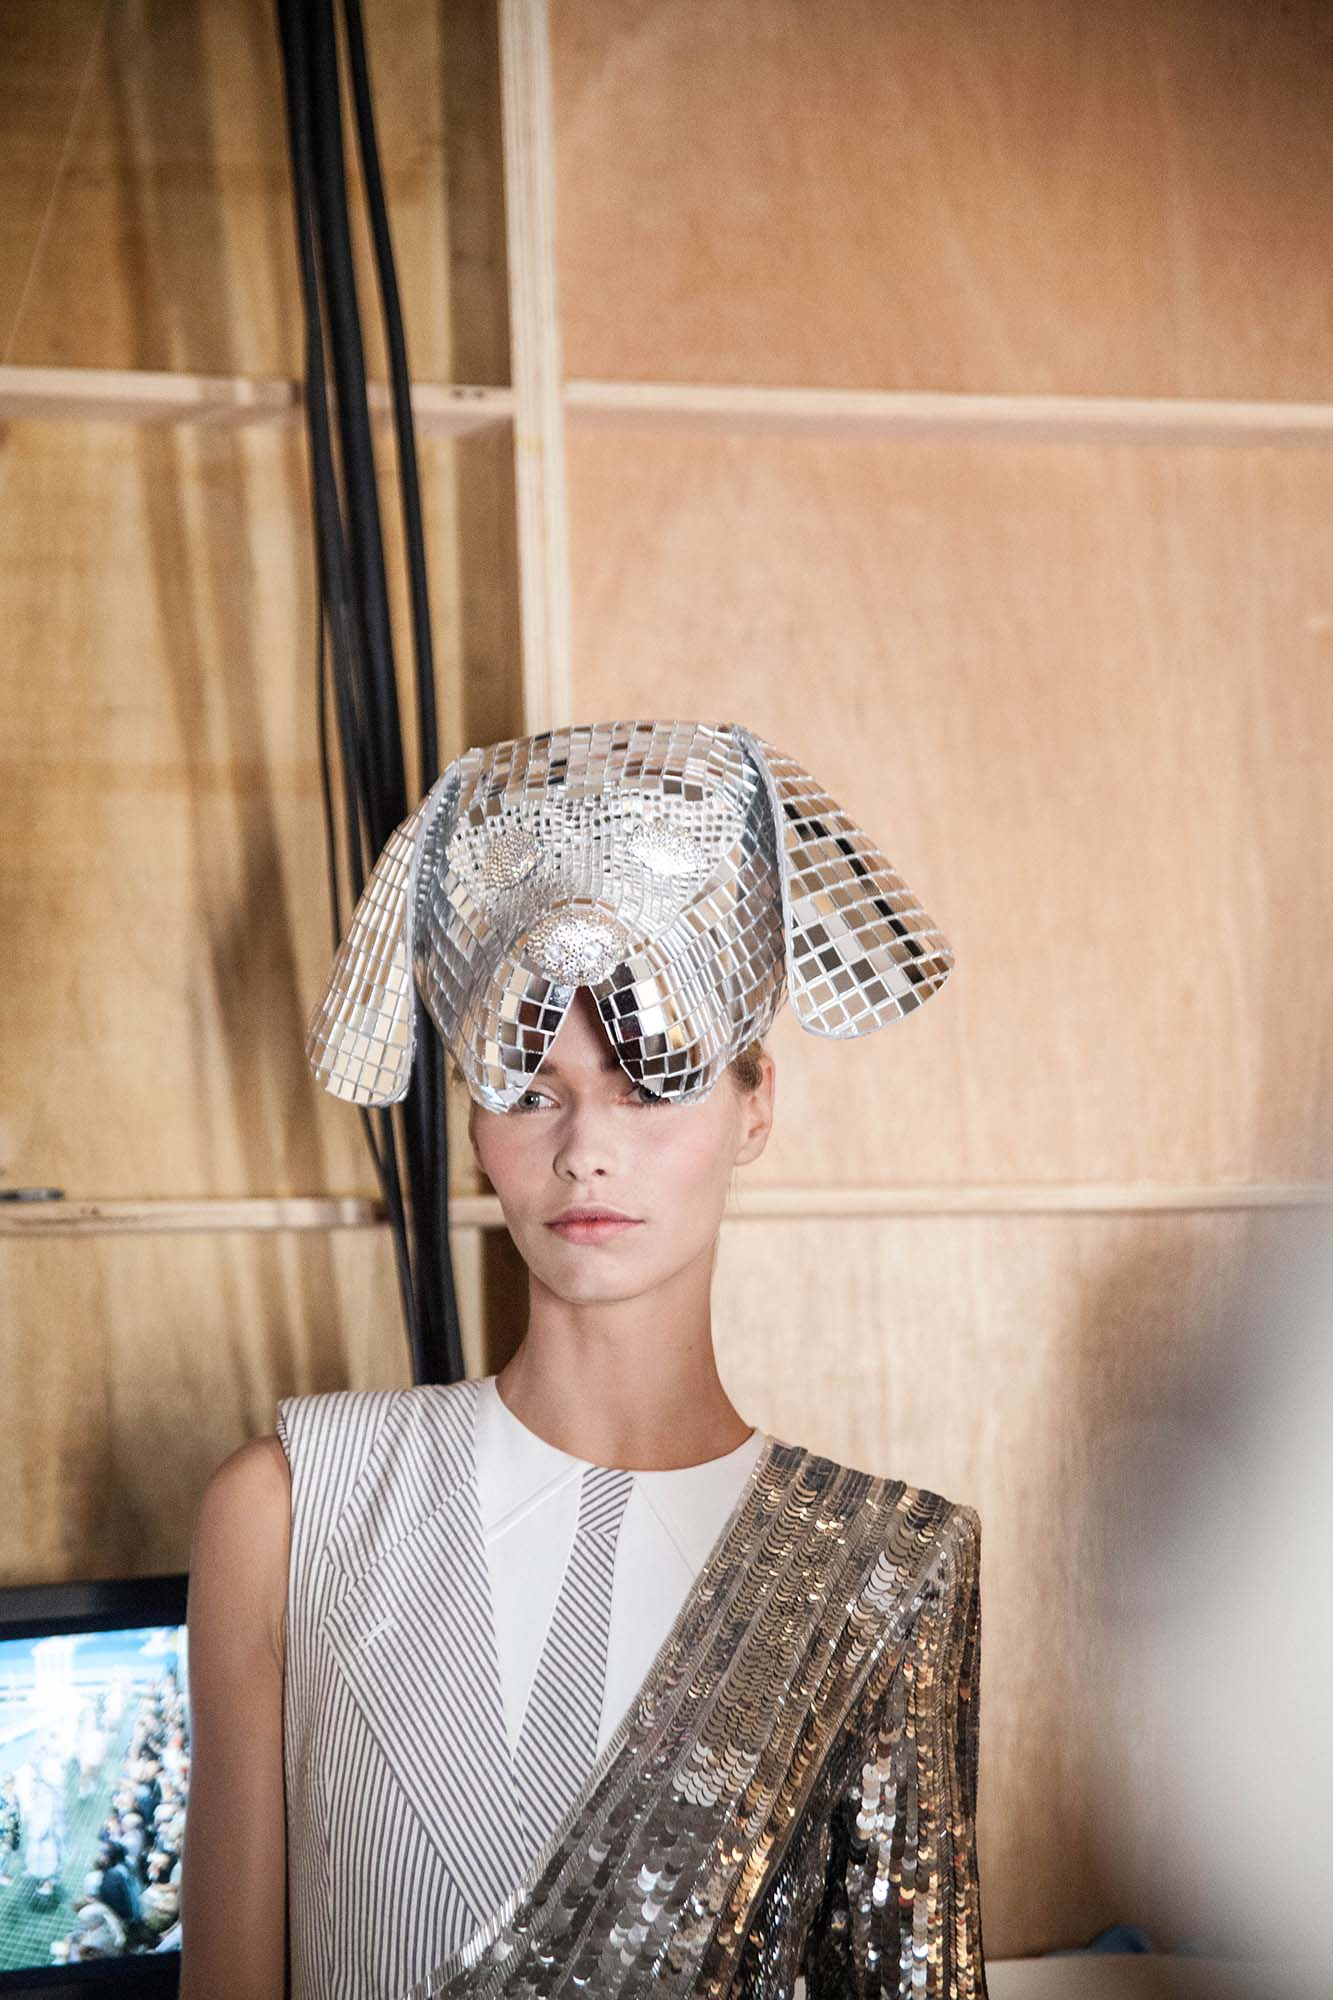 fft_thombrowne-32